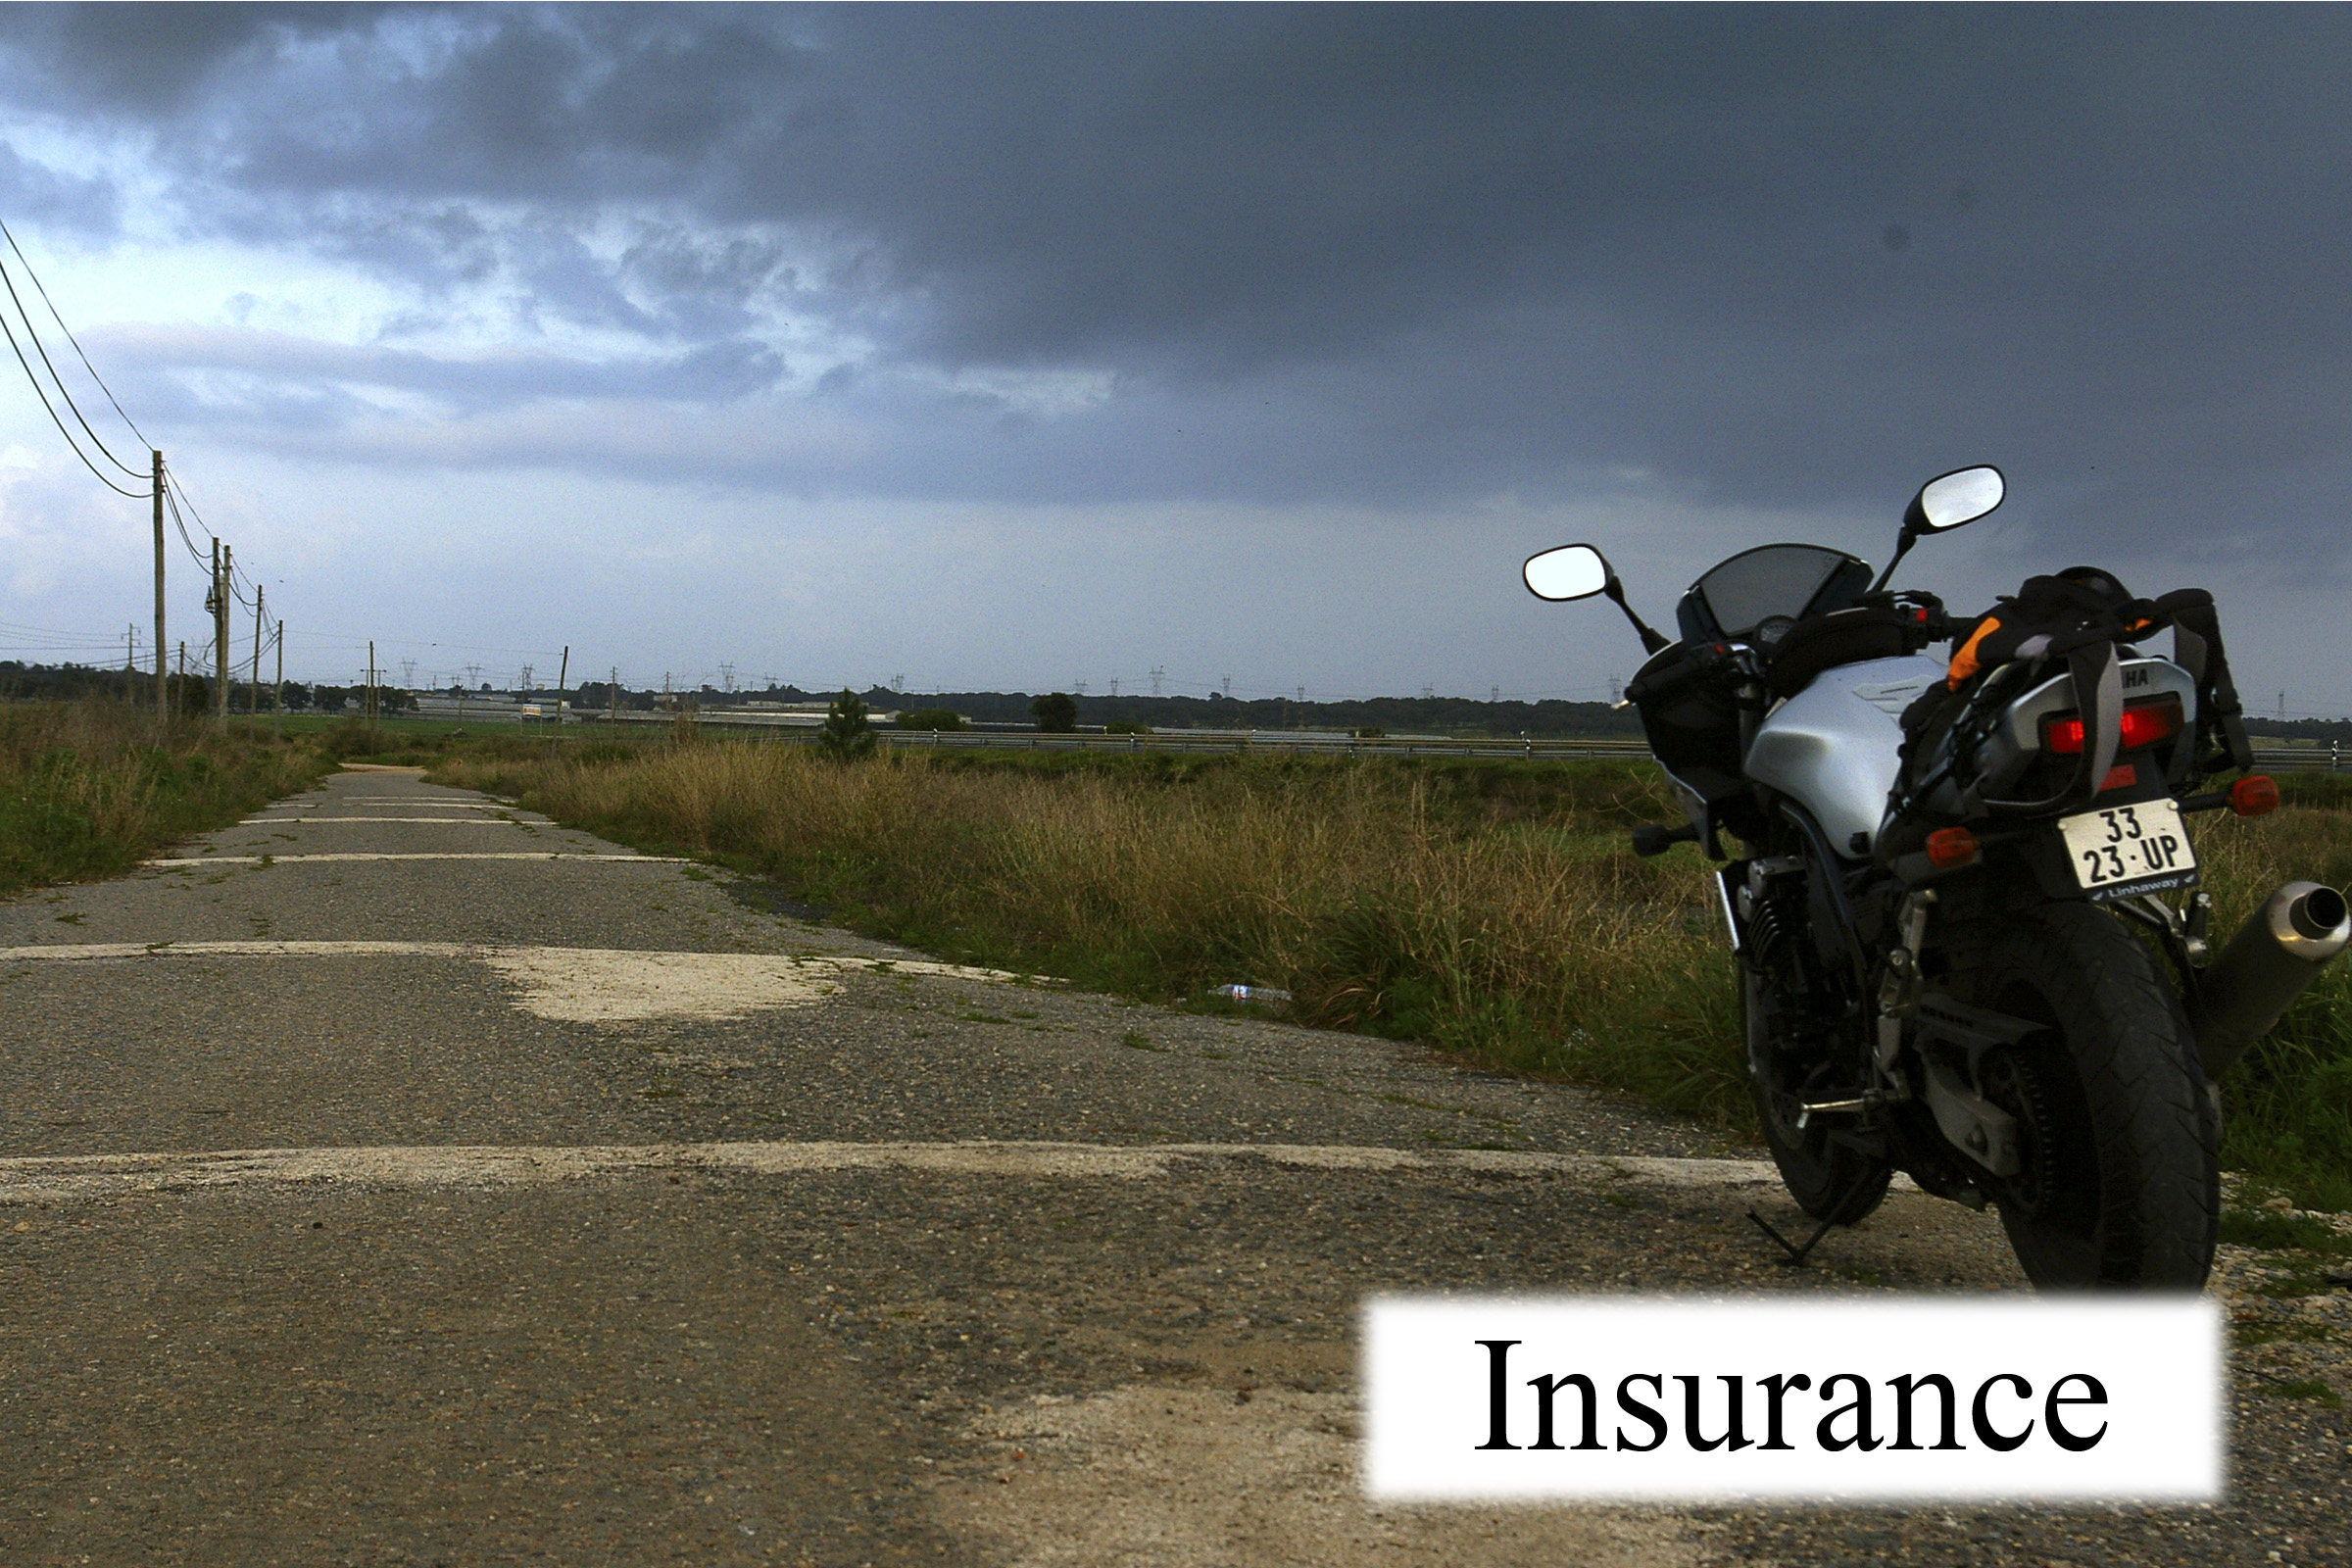 Motorcycle Insurance April 2015